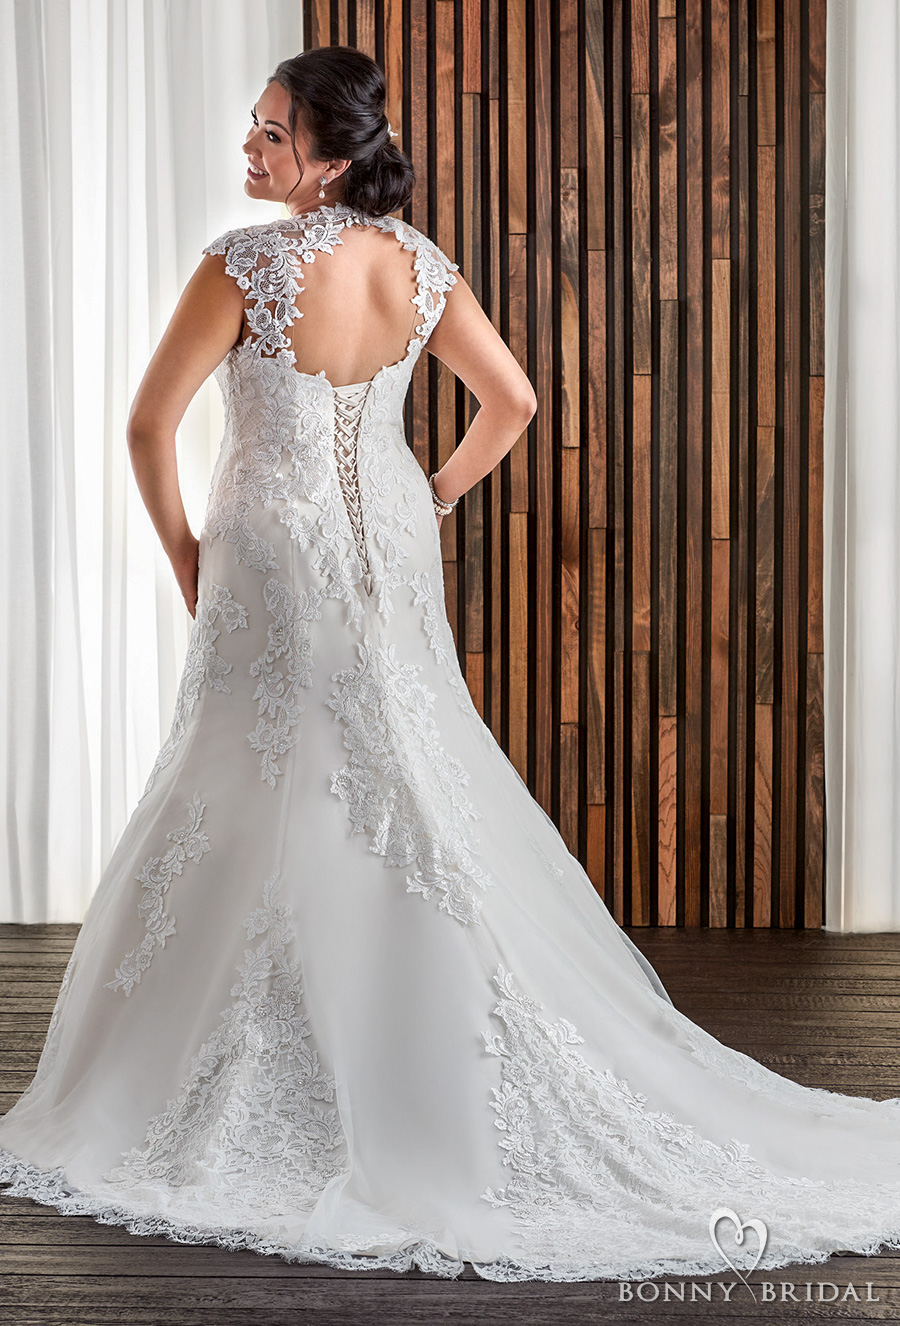 Bonny bridal wedding dresses unforgettable styles for for Wedding dress cuts